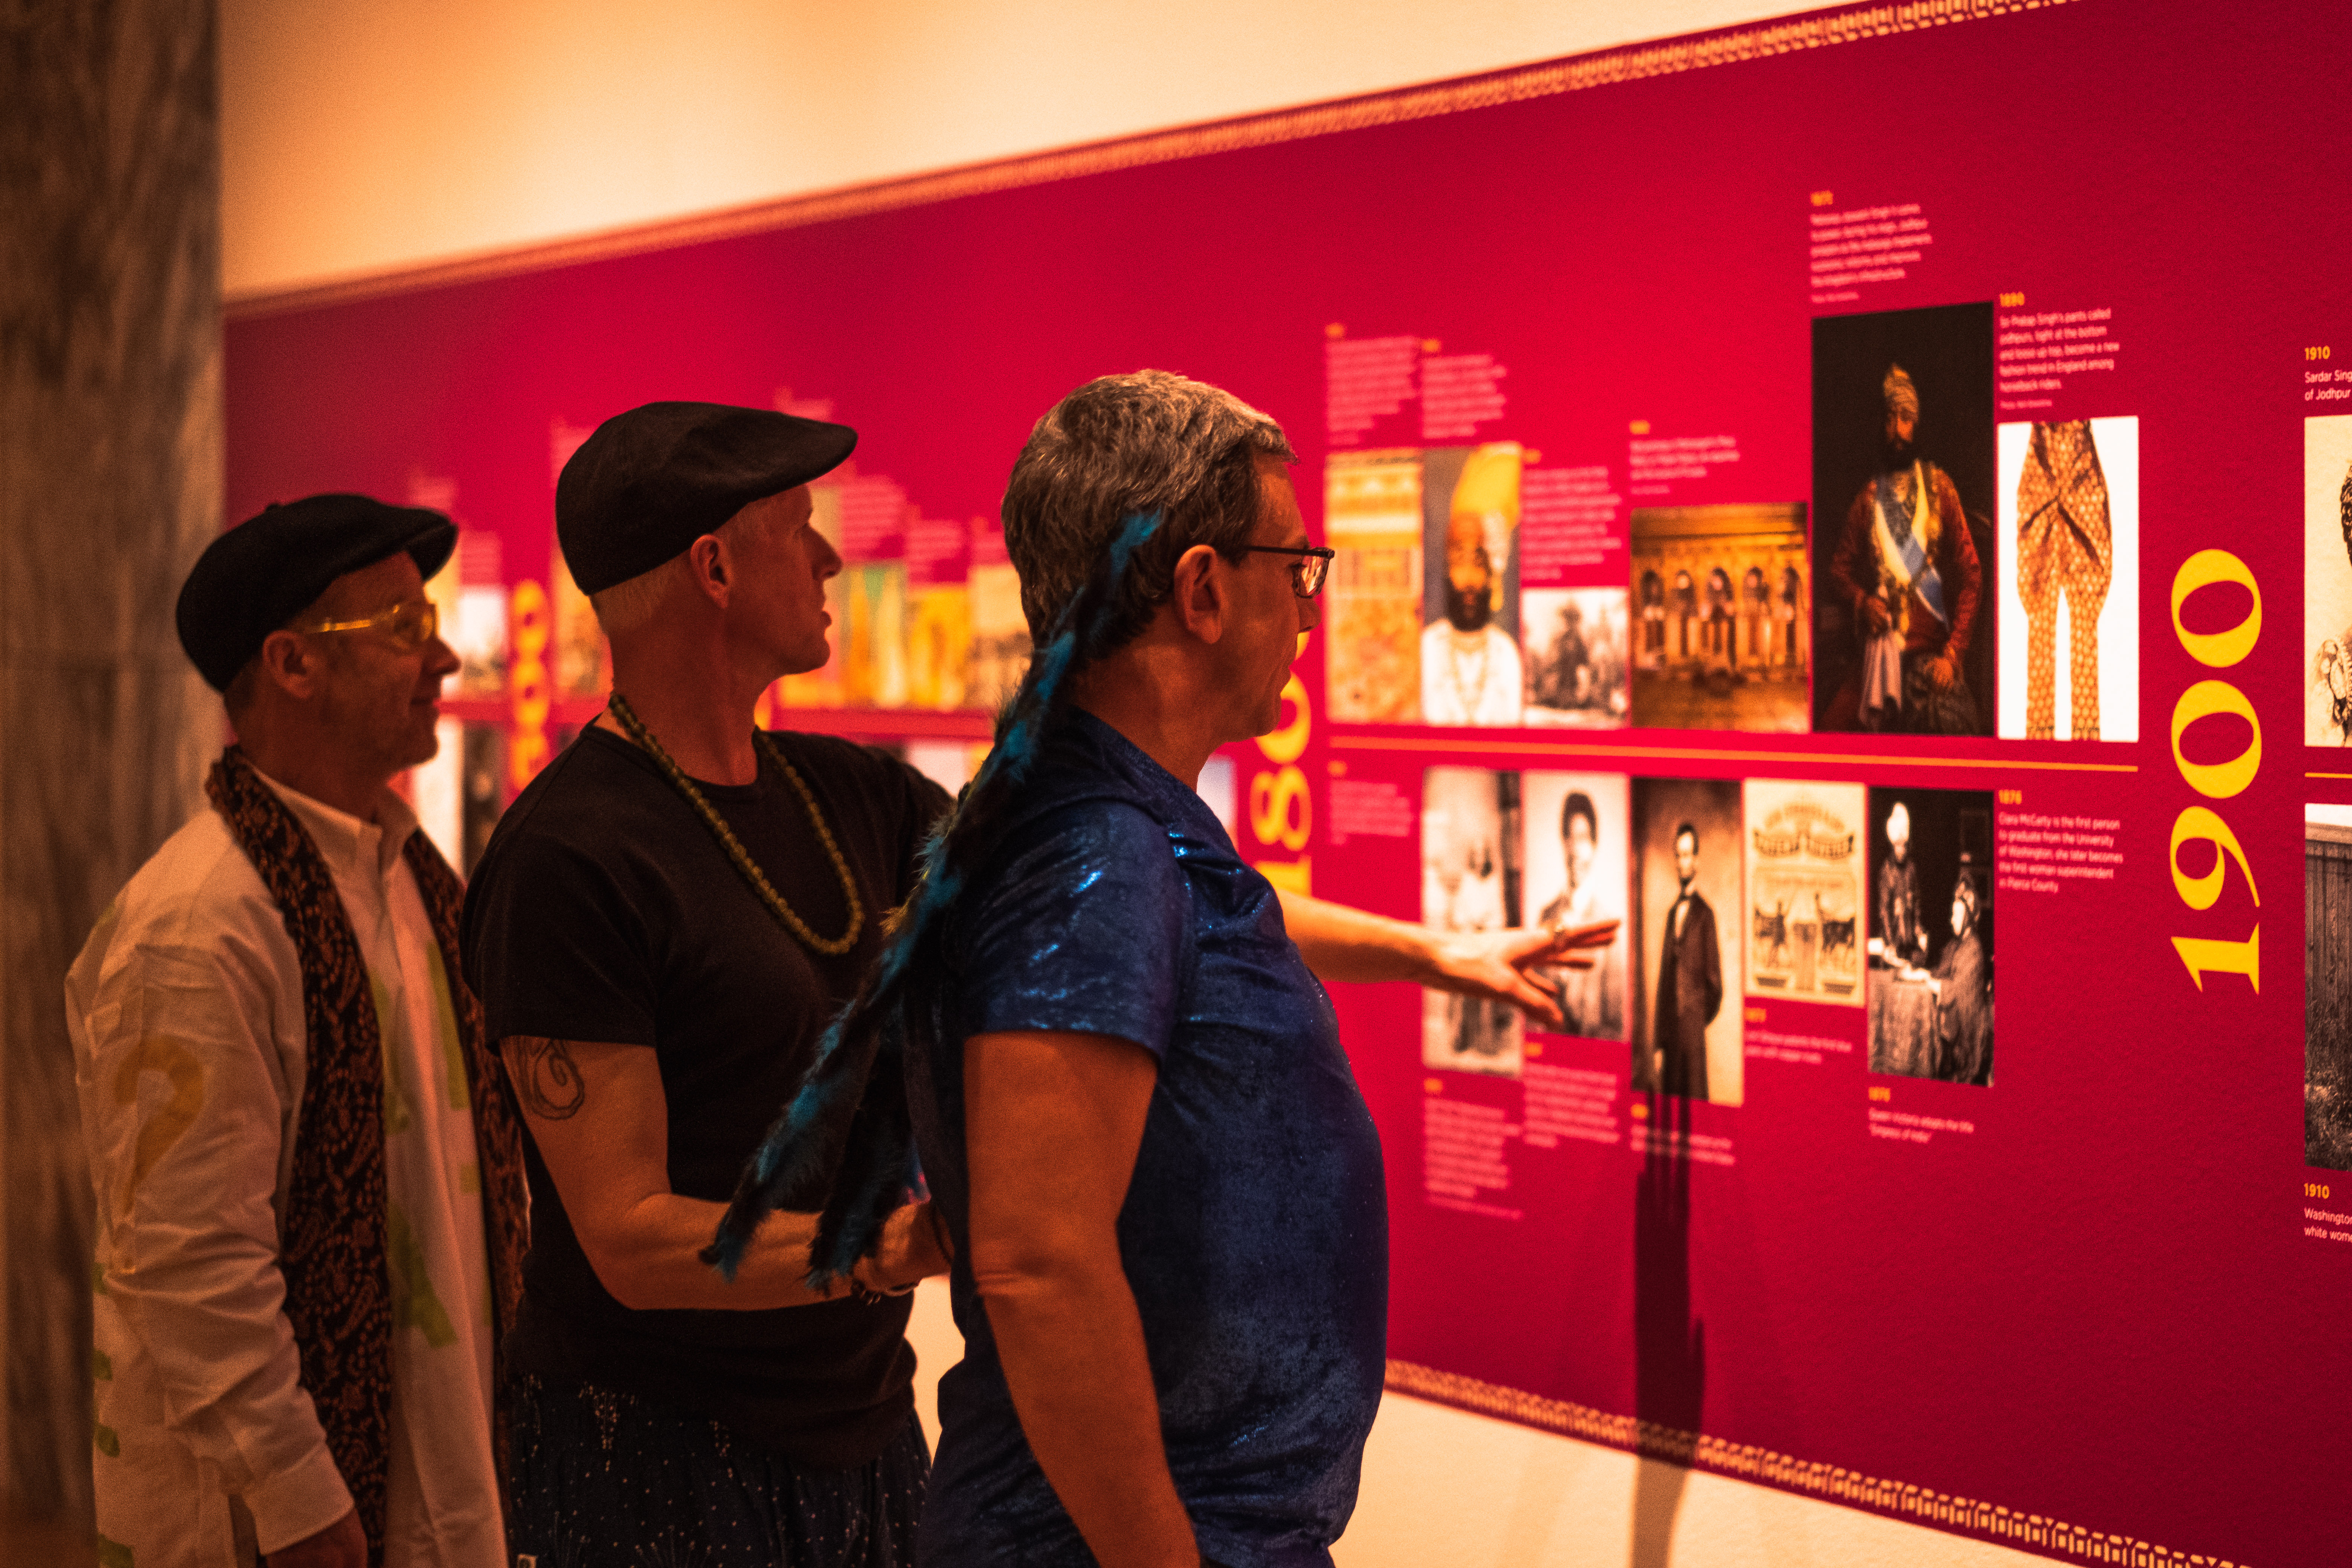 Vibrant lights, live music, and tours of the museum treated guests to a night at SAM that they won't soon forget. With a featured exhibit titled Peacock in the Desert, patrons were guided through five centuries of historical artistic creations from the kingdom of Marwar-Jodphur in India that included paintings, fine jewelry, decorated arms and armor, and intricate furnishings. Along with dance performances, great food and drink, and interactive art - Remix delivered one heck of a night out. (Image: Ryan McBoyle / Seattle Refined)